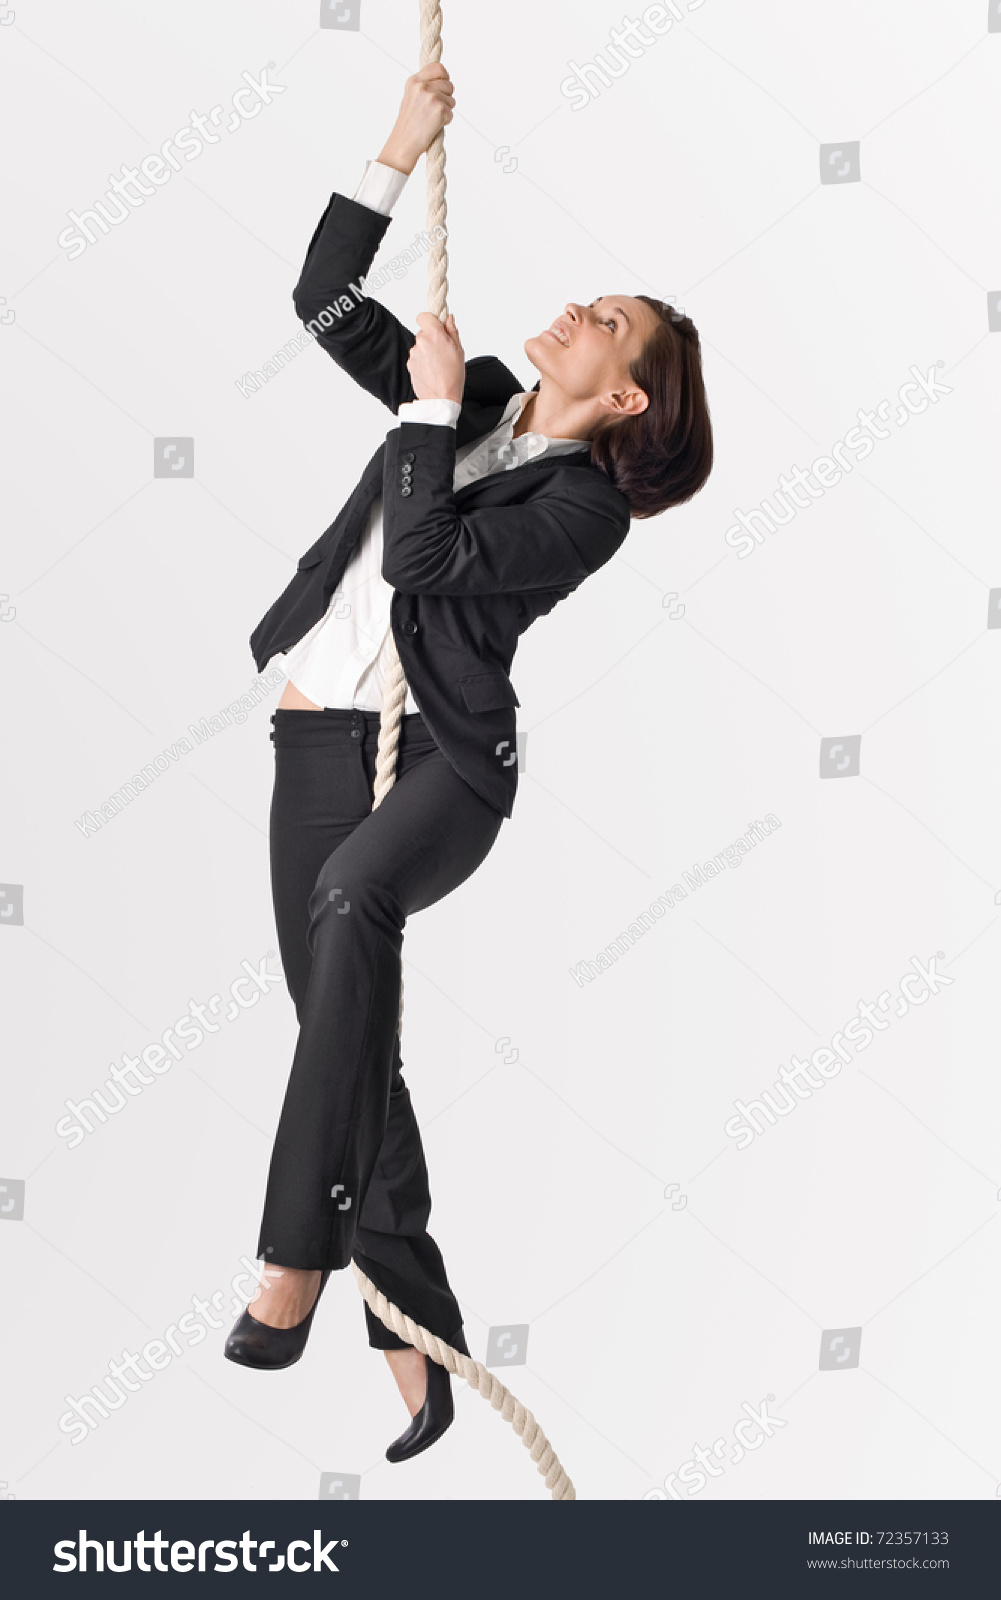 successful w climbing career stock photo shutterstock successful w climbing up to career